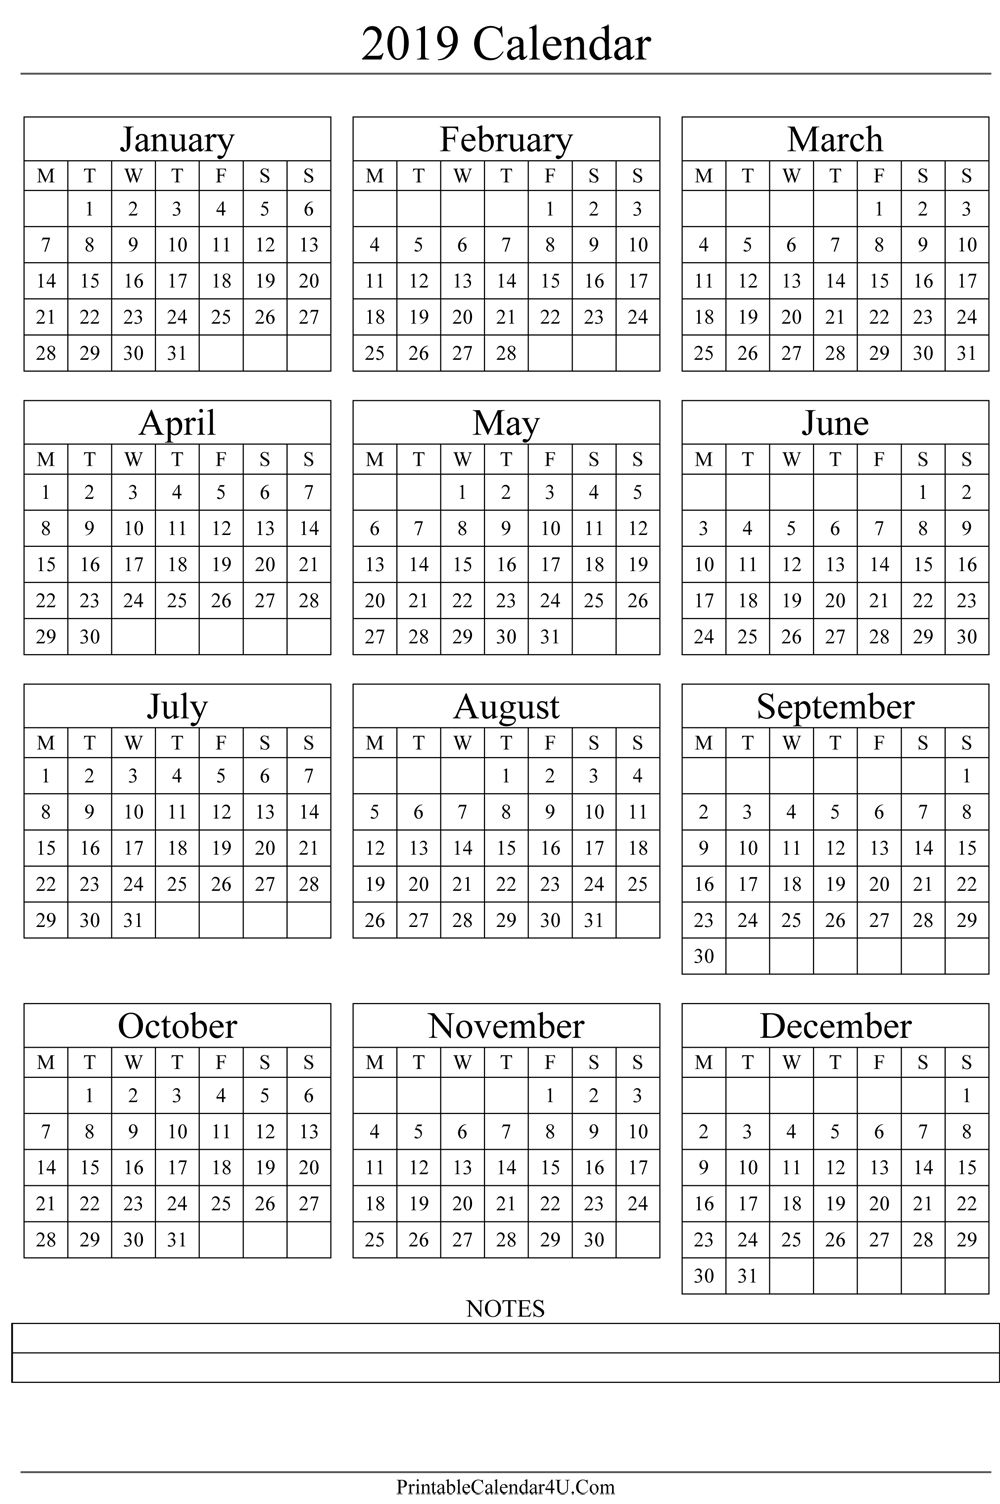 Yearly Calendar 2019 Printable annual calendar 2019 portrait printable calendar 2017 | Gift ideas